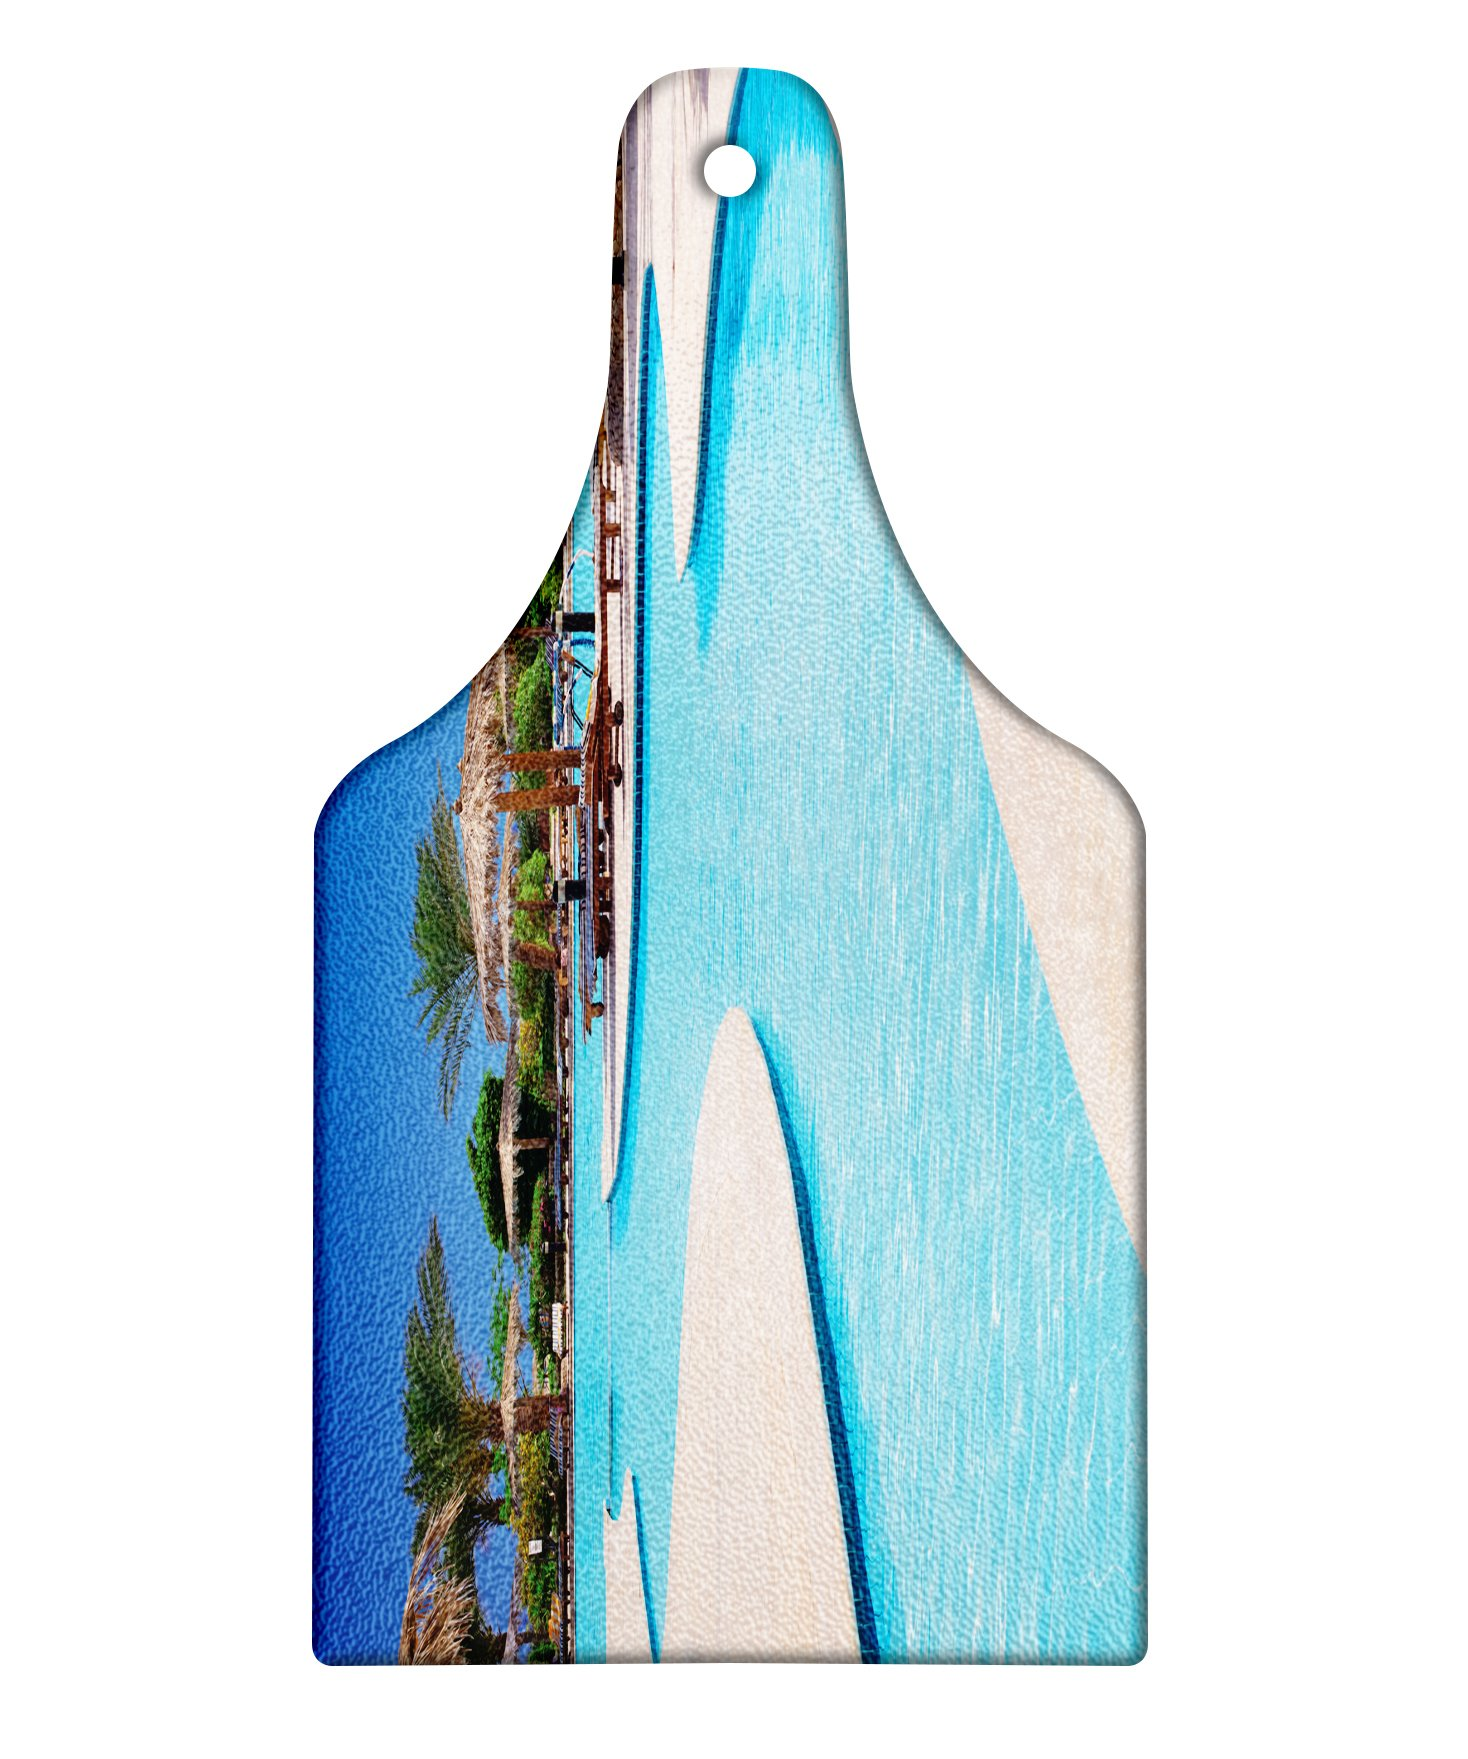 Lunarable Holiday Cutting Board, Swimming Pool of Hotel Resort Relaxation Tourism Vacation Tourist Attractions, Decorative Tempered Glass Cutting and Serving Board, Wine Bottle Shape, Cream Aqua Green